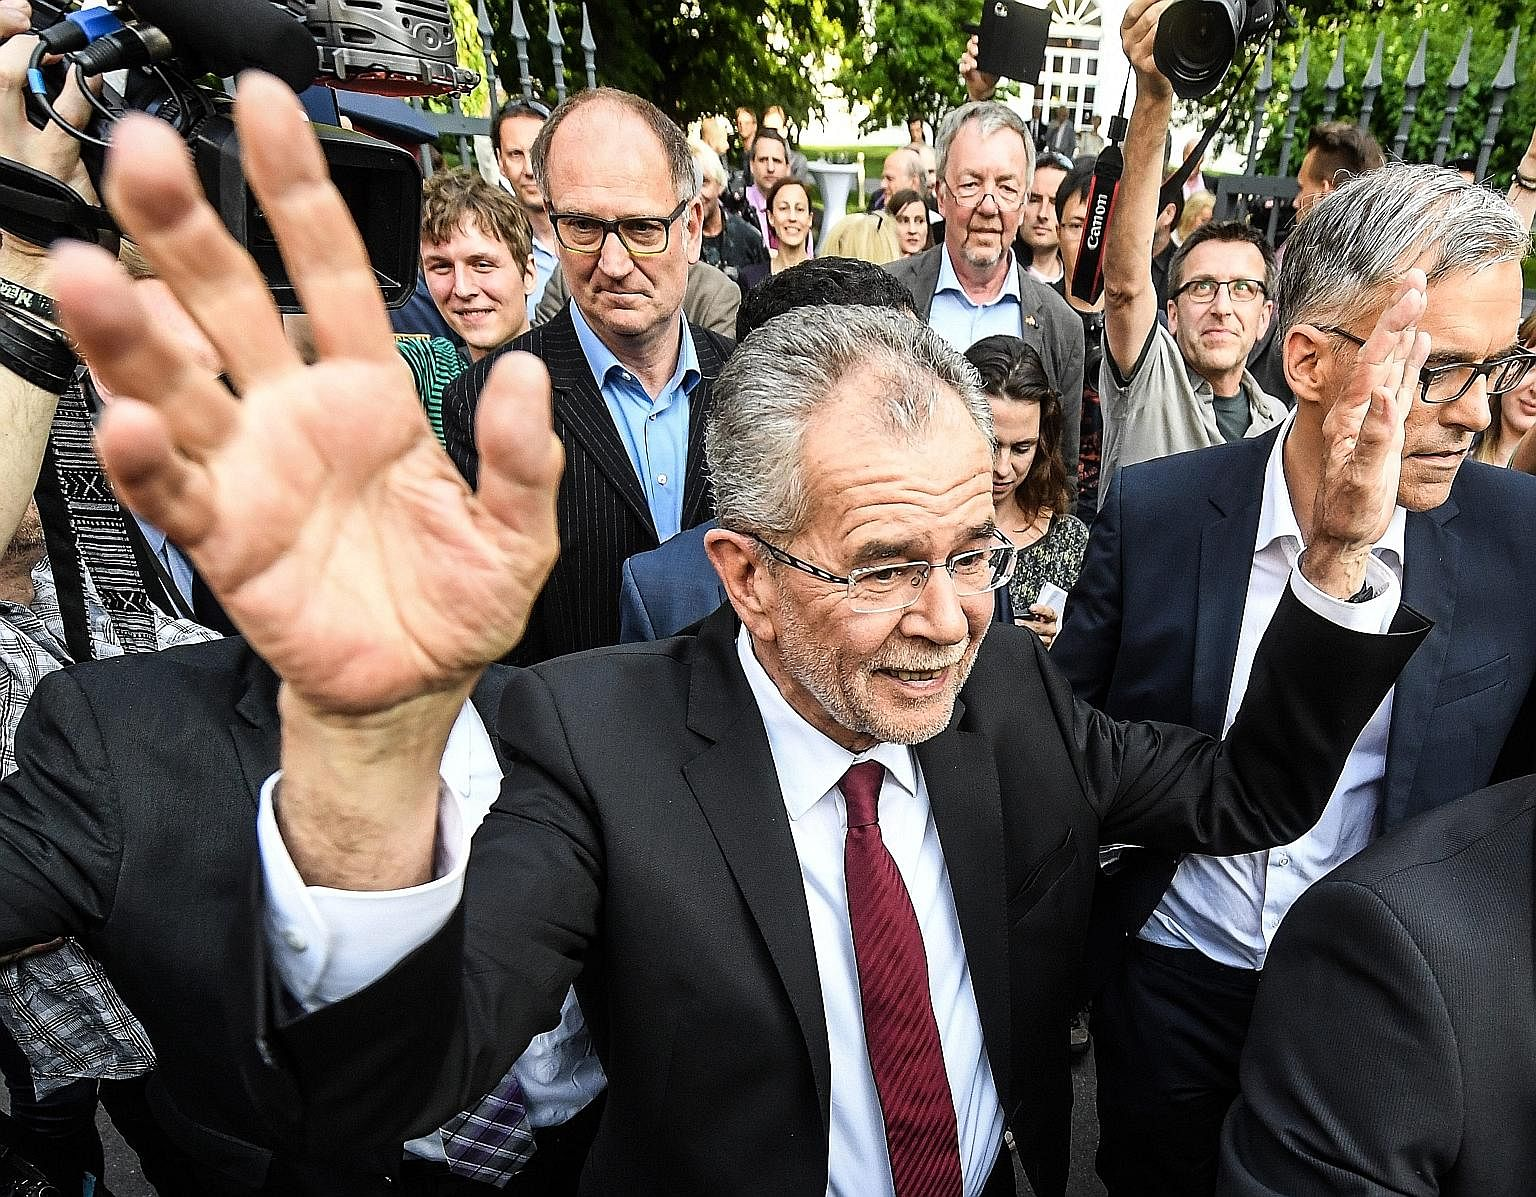 Austrian President-elect Alexander Van der Bellen, who is supported by the Green Party, waving after delivering a statement on Monday, following the presidential election run-off.